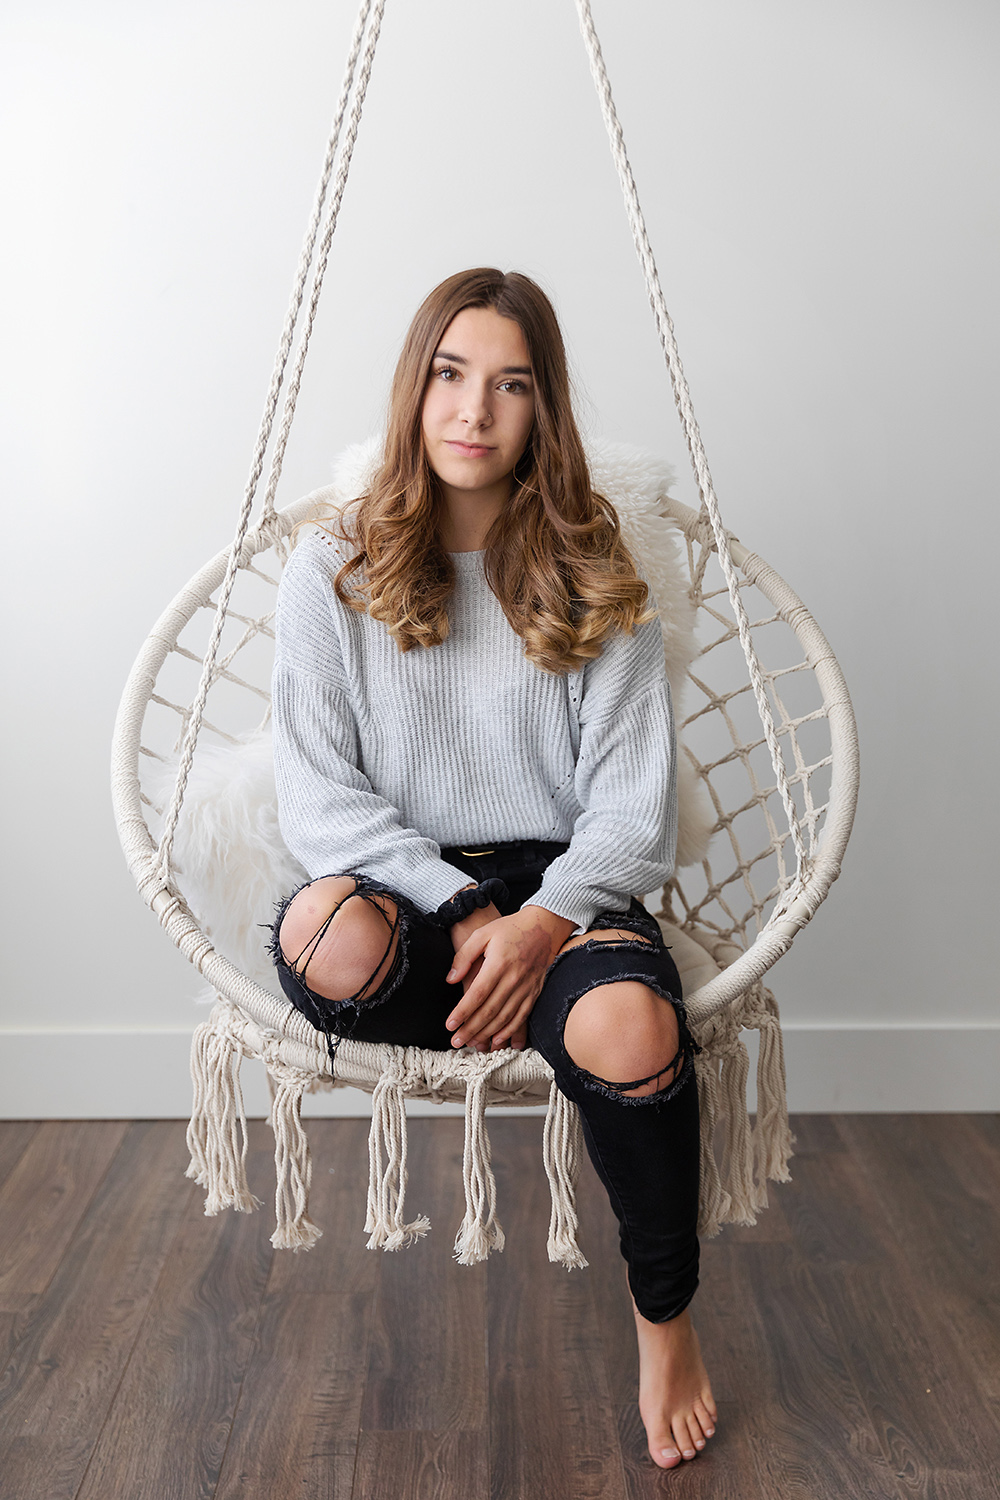 Teen girl on a crochet swing by photographer, Dana Pugh